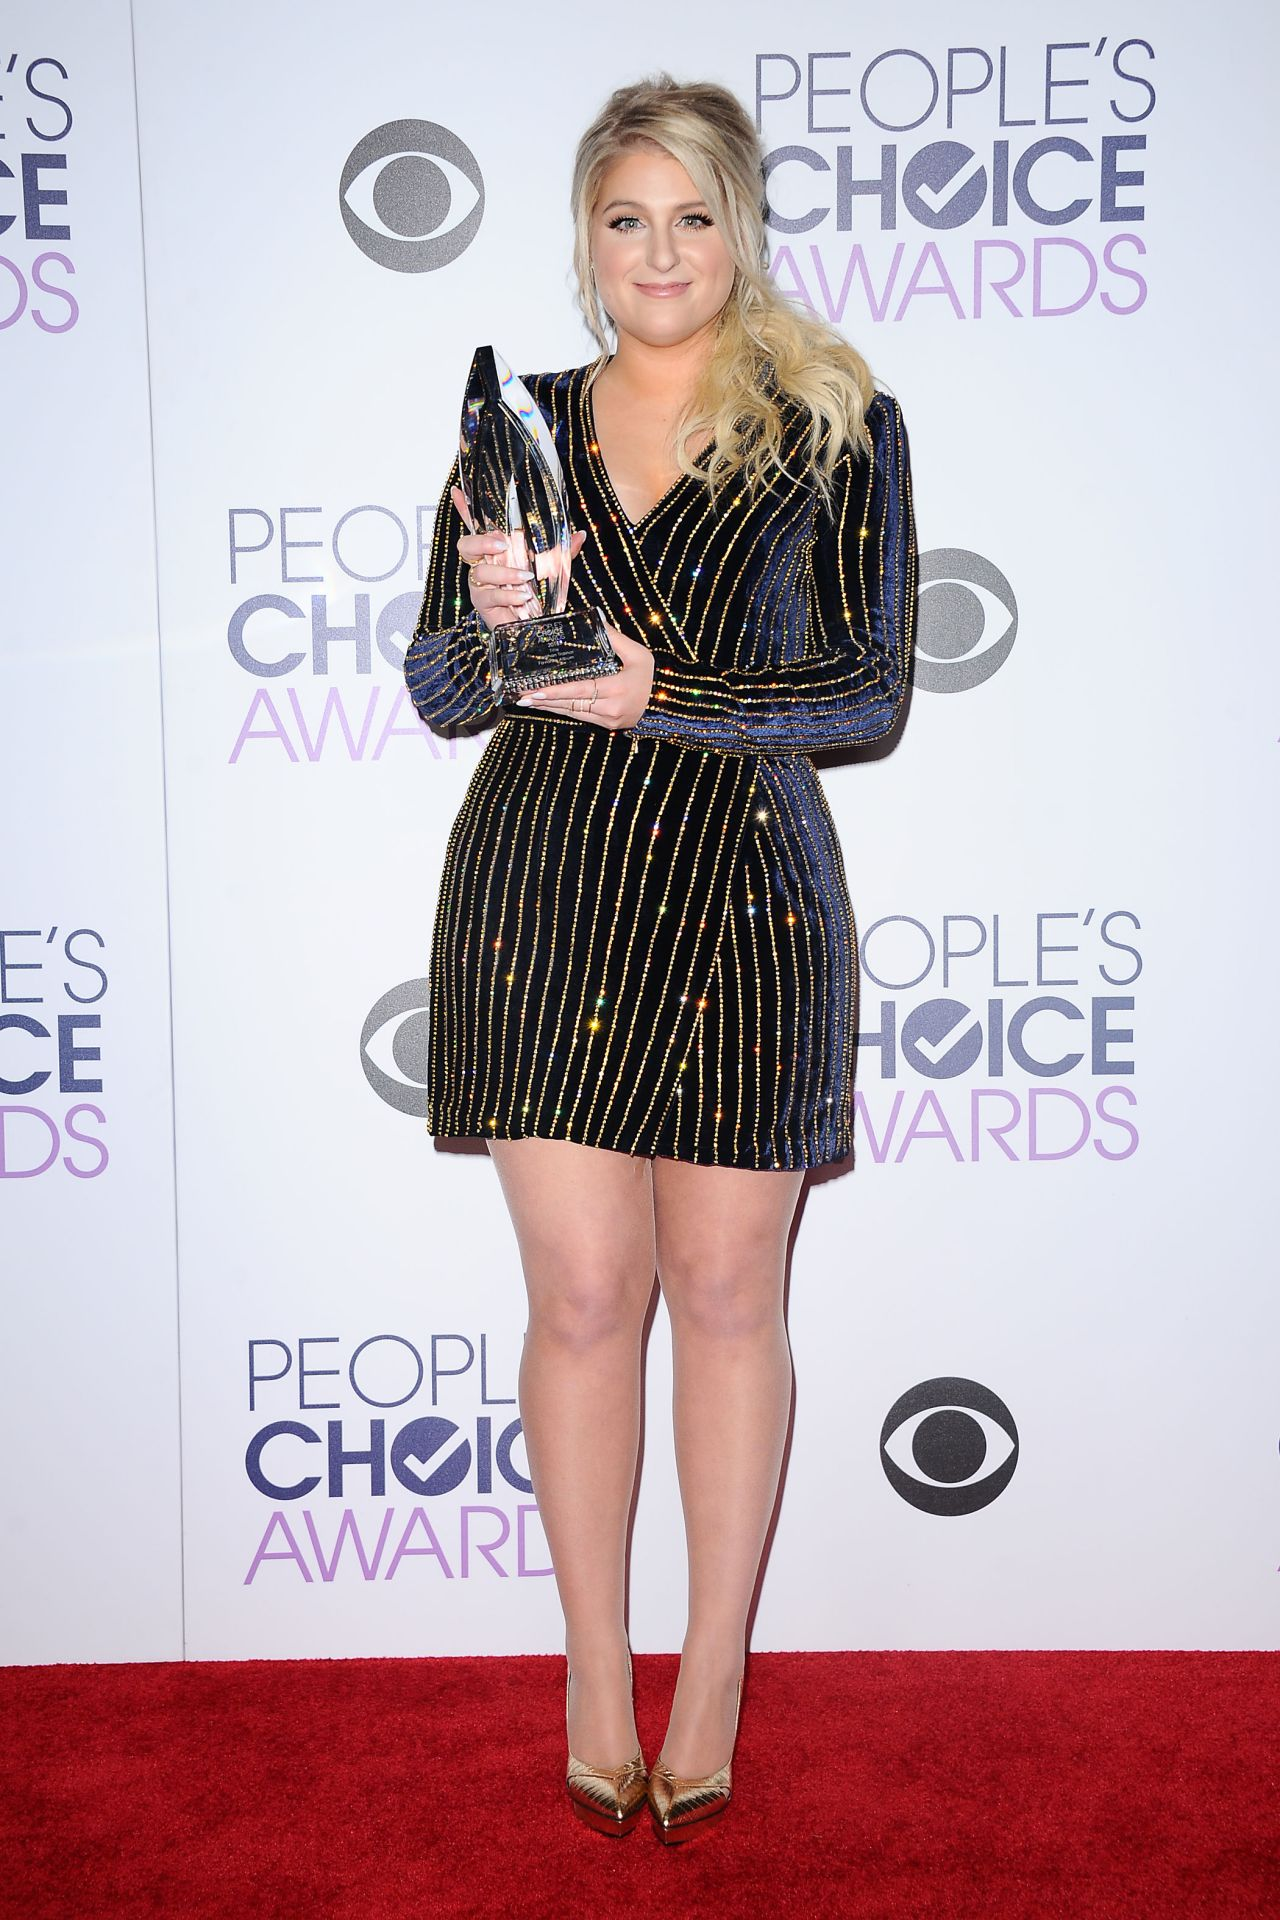 meghan-trainor-2016-people-s-choice-awards-in-microsoft-theater-in-los-angeles-1